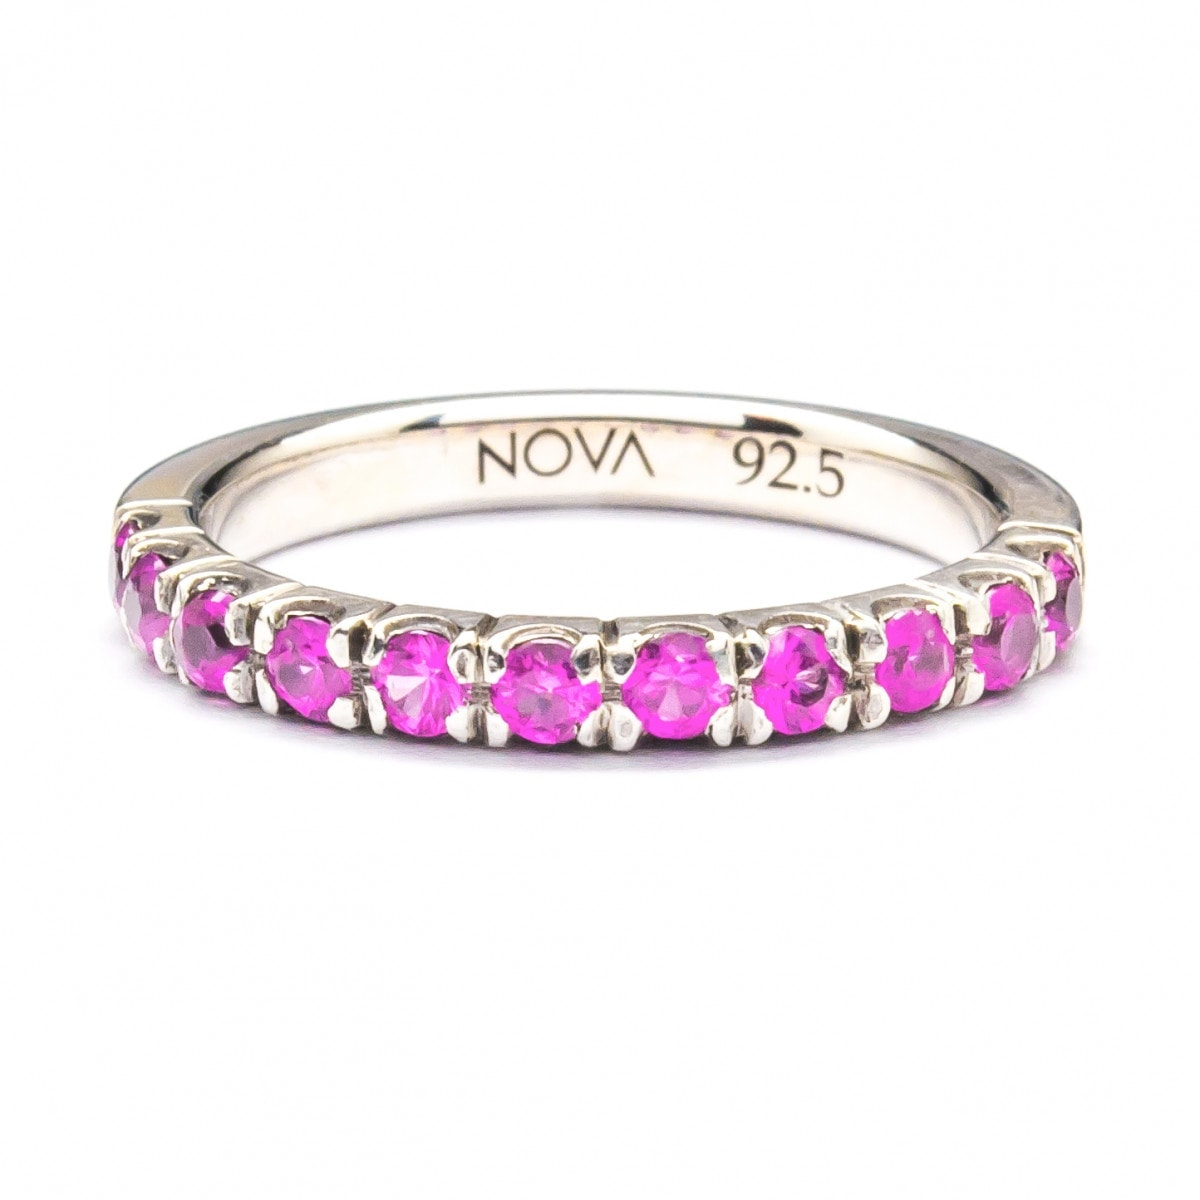 Silver Ring with Pave Setting Pink Sapphire (R282-P.Sap)